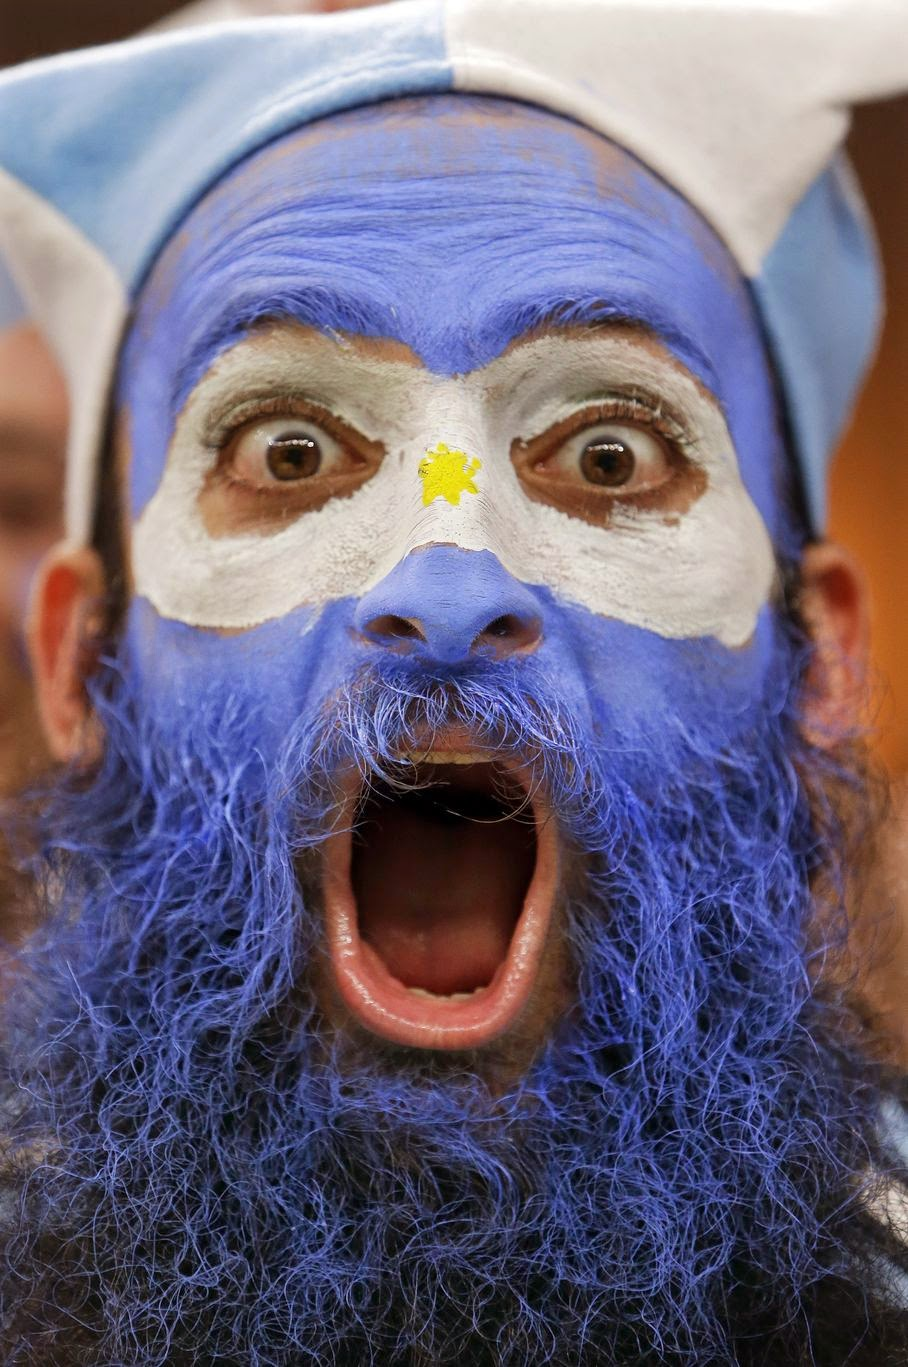 An Argentine supporter yells during the group F World Cup soccer match between Argentina and Bosnia at the Maracana Stadium in Rio de Janeiro, Brazil, Sunday, June 15, 2014.